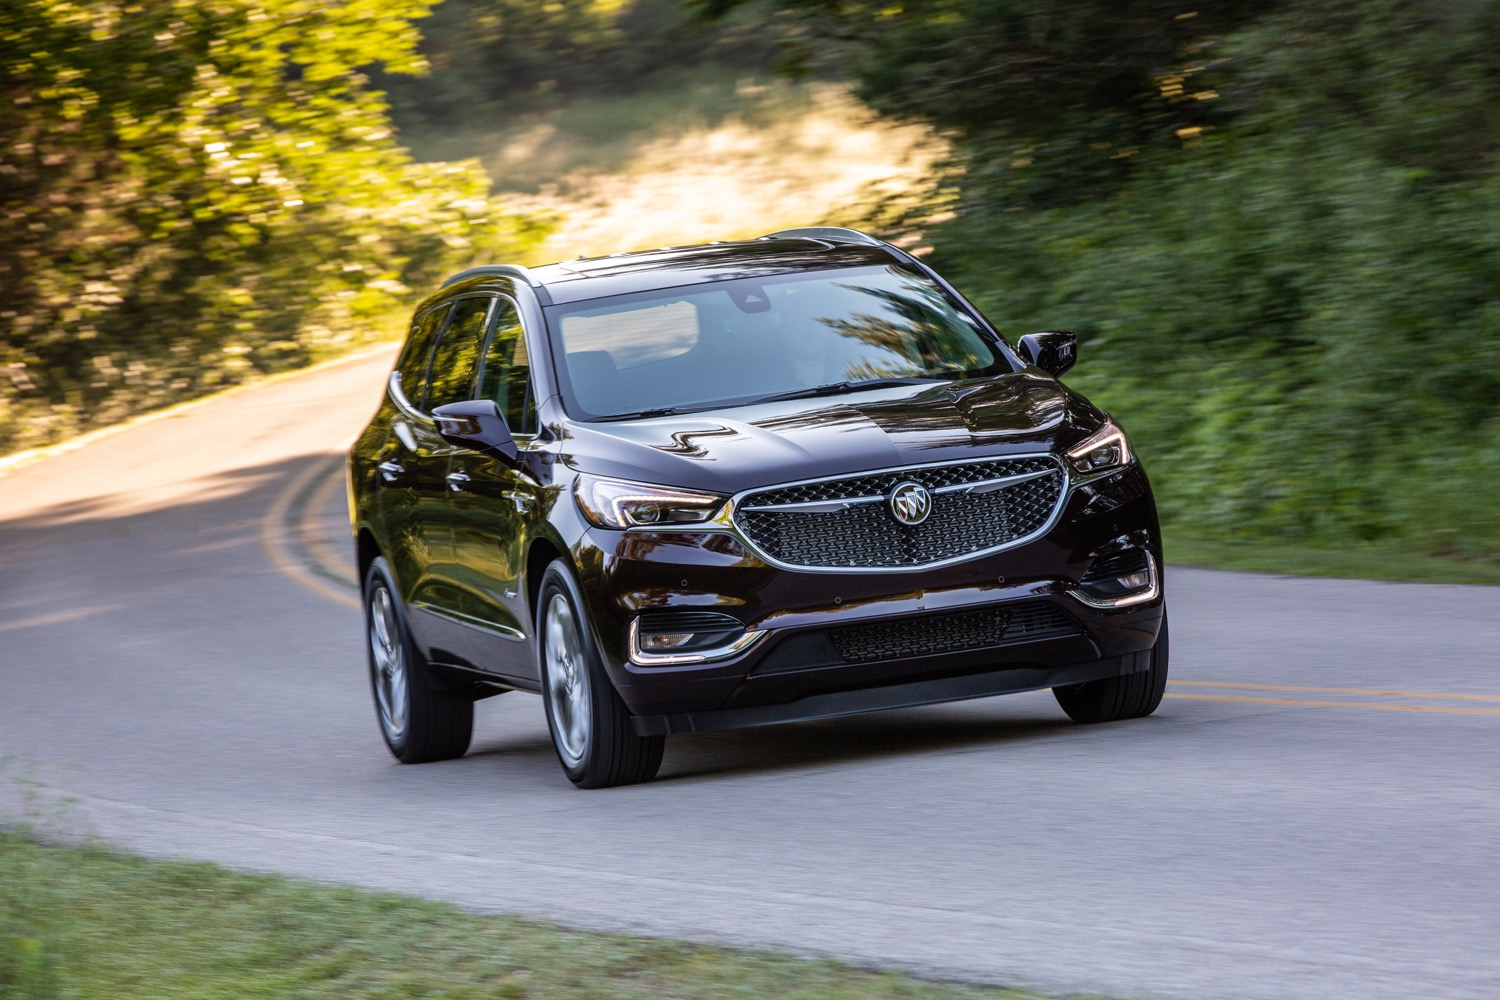 All The Changes Made To The 2020 Buick Enclave | Gm Authority 2022 Buick Enclave Engine, Navigation, Navigation System